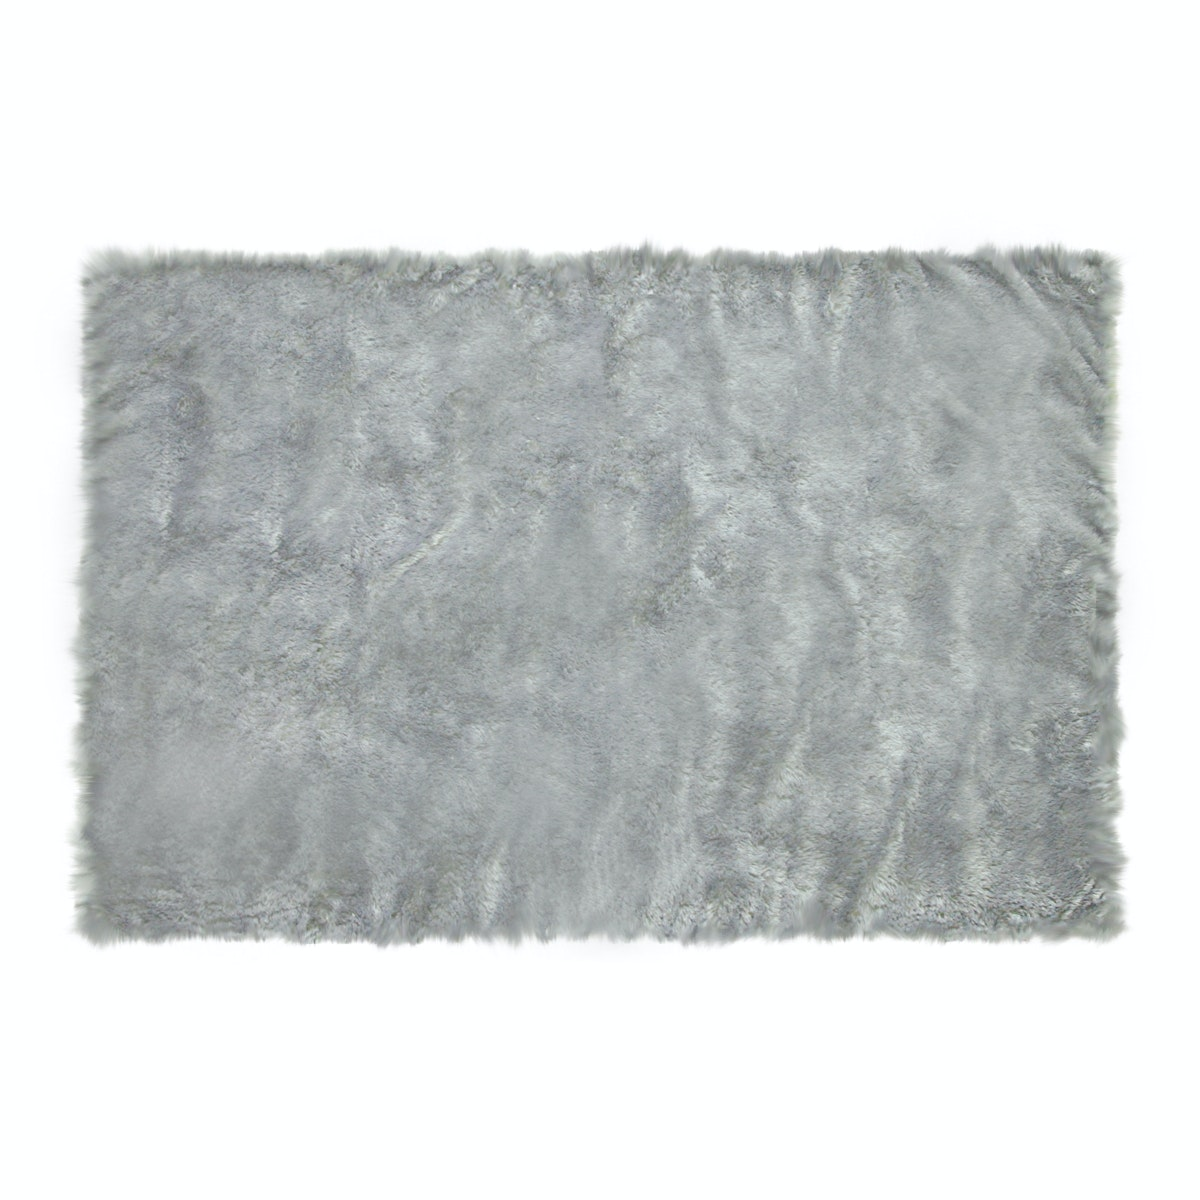 Glerry Home Decor Square Grey Fur Rug 300 x 150 cm